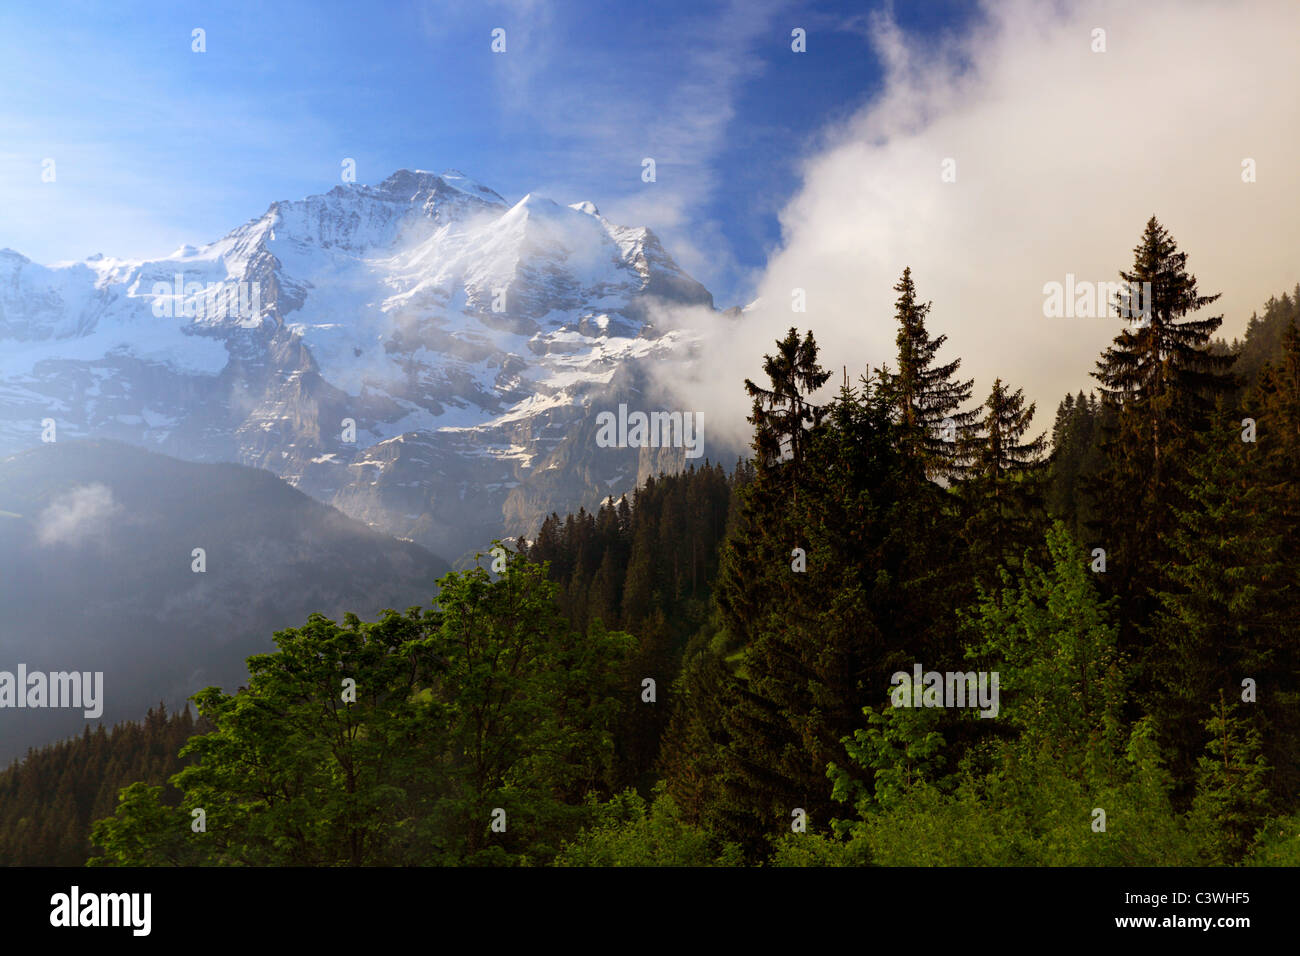 Morning fogs lifts to reveal the alps near Murren in Switzerland - Stock Image